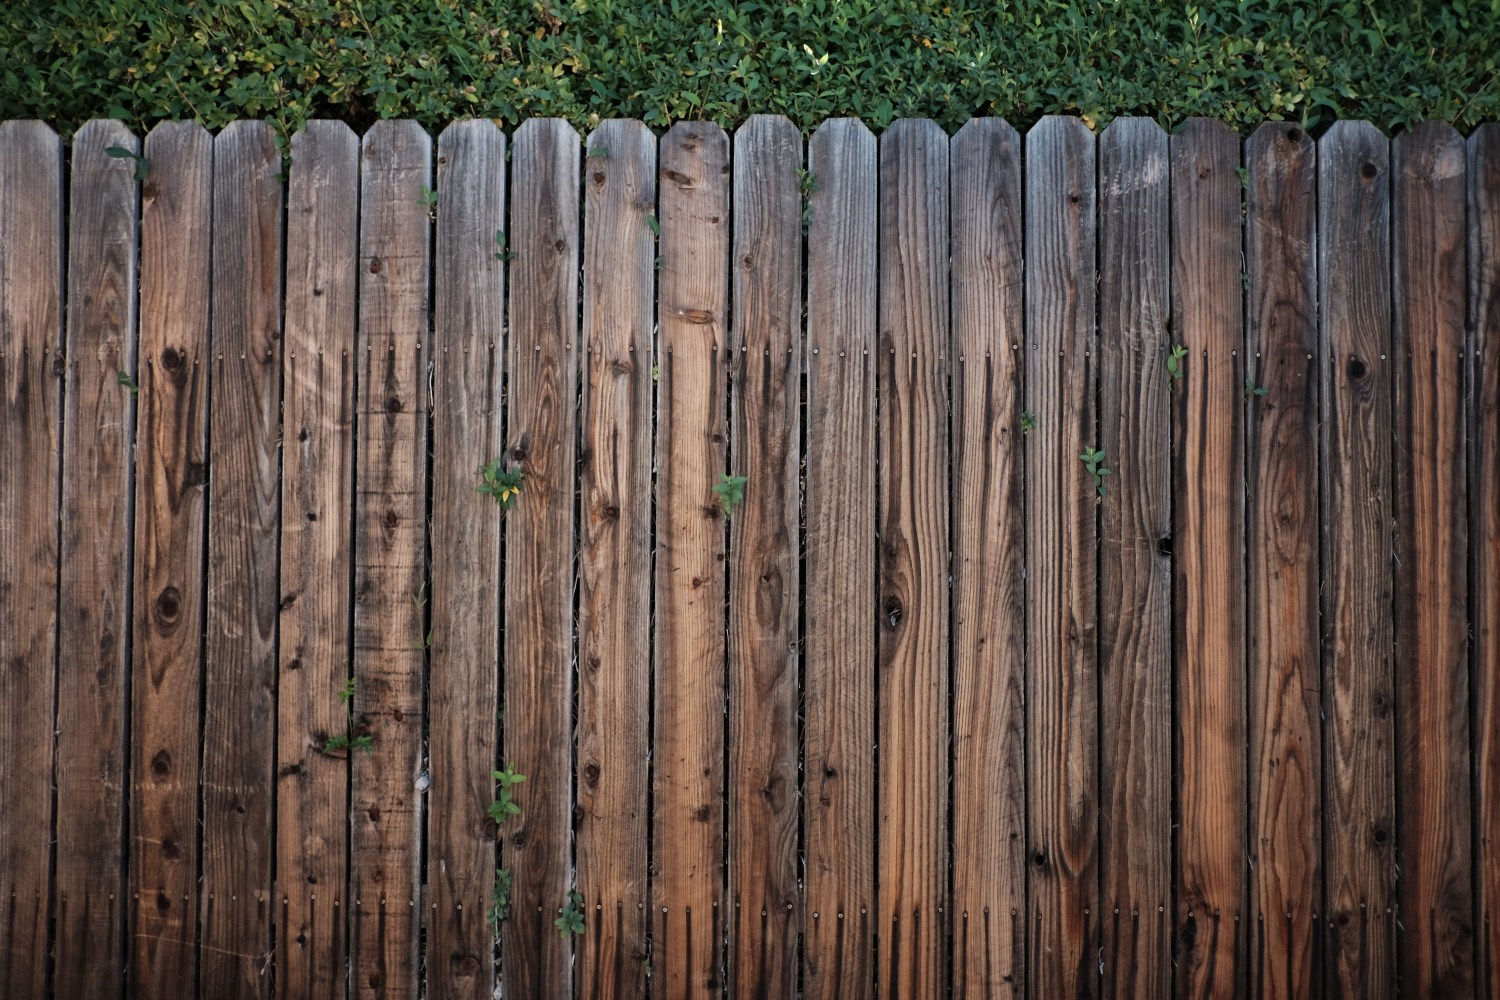 1000 Engaging Fence Photos Pexels Free Stock Photos